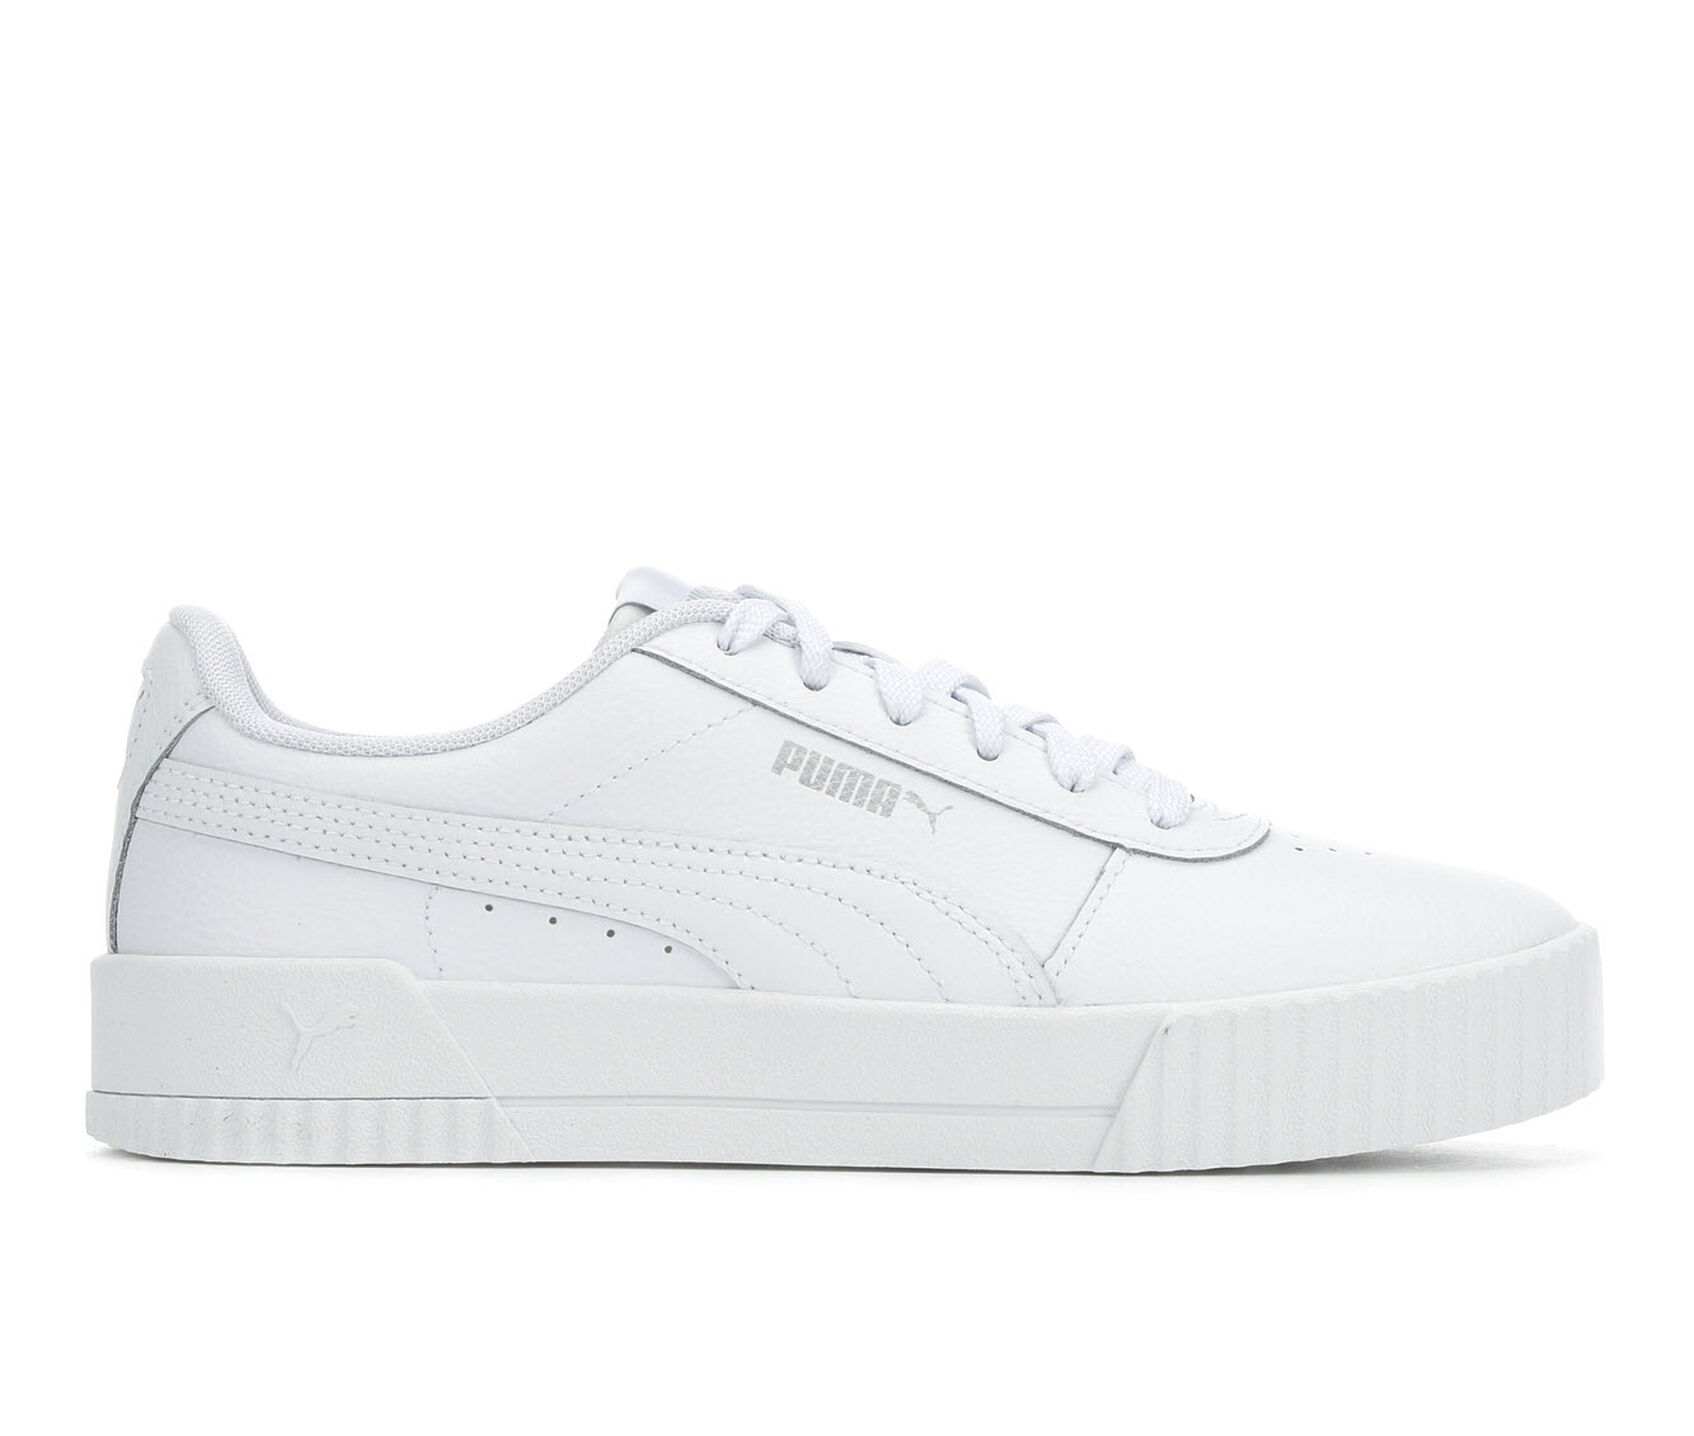 puma shoes for women white